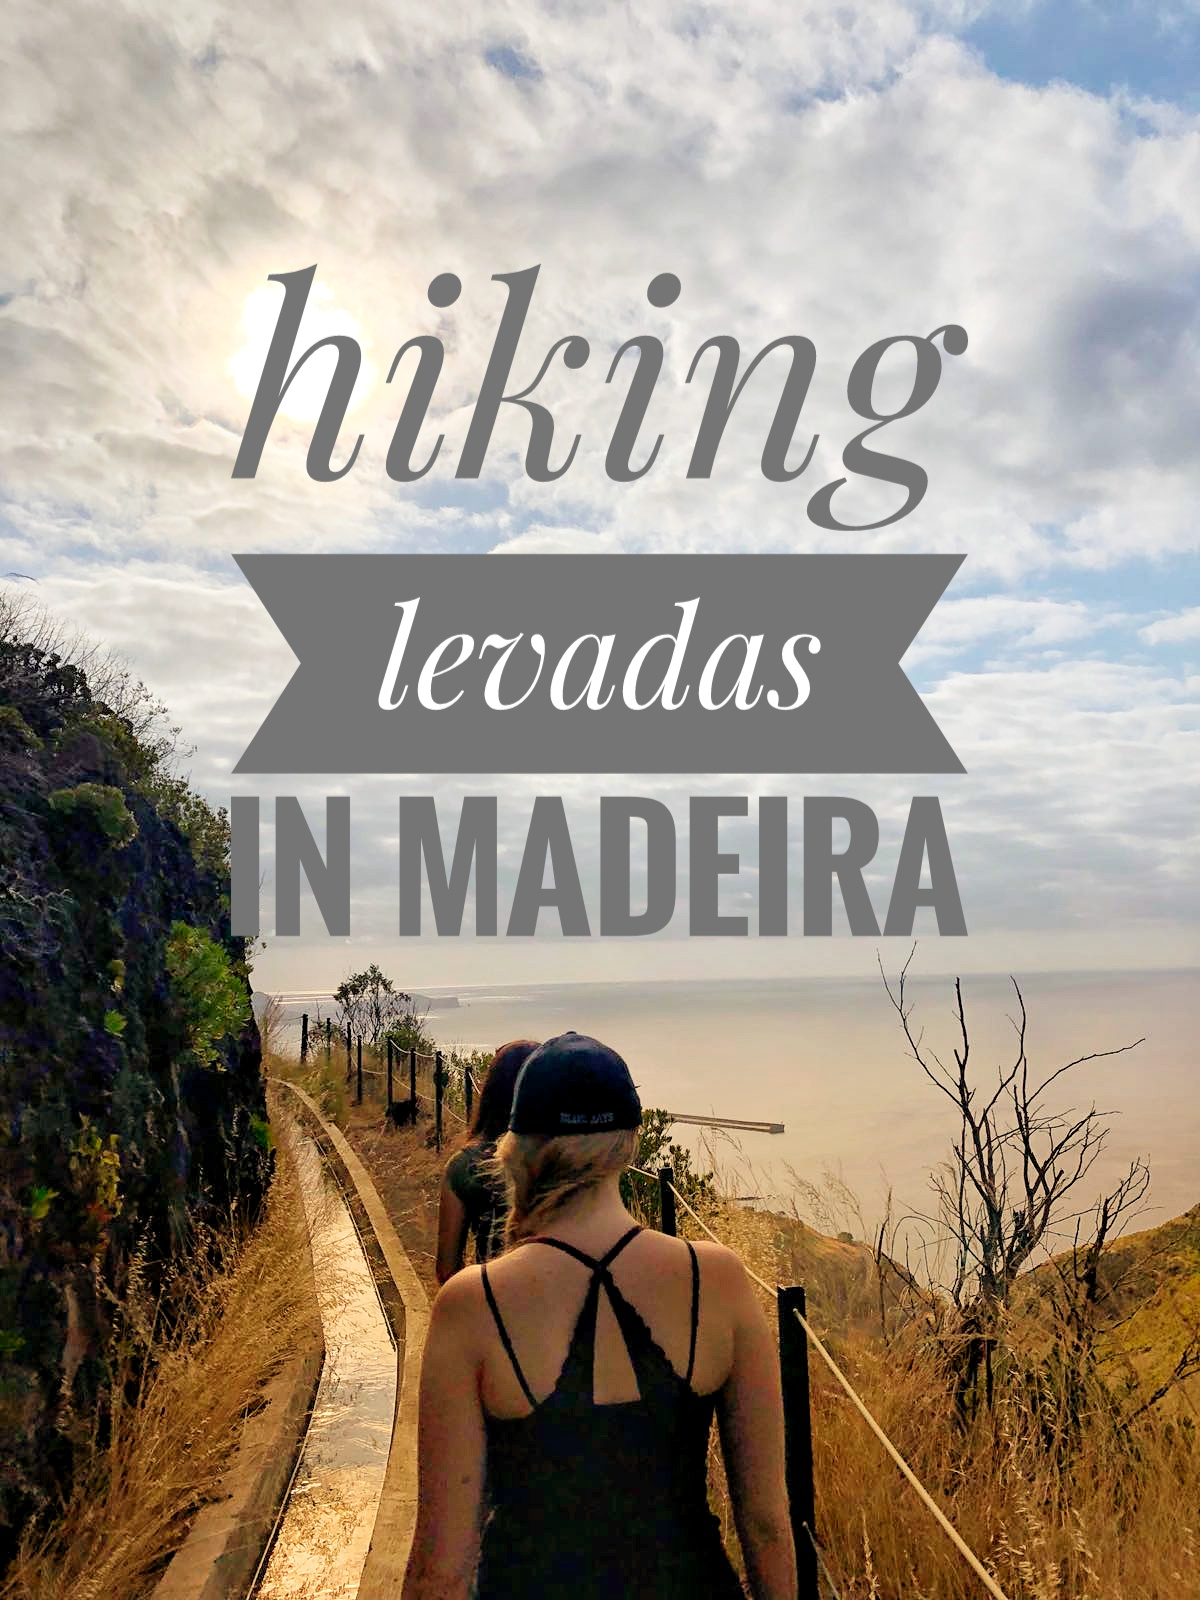 the words hiking levadas in madeira are written over the photograph of a girl in a baseball cap walking on a cliff overlooking the ocean beside a levada